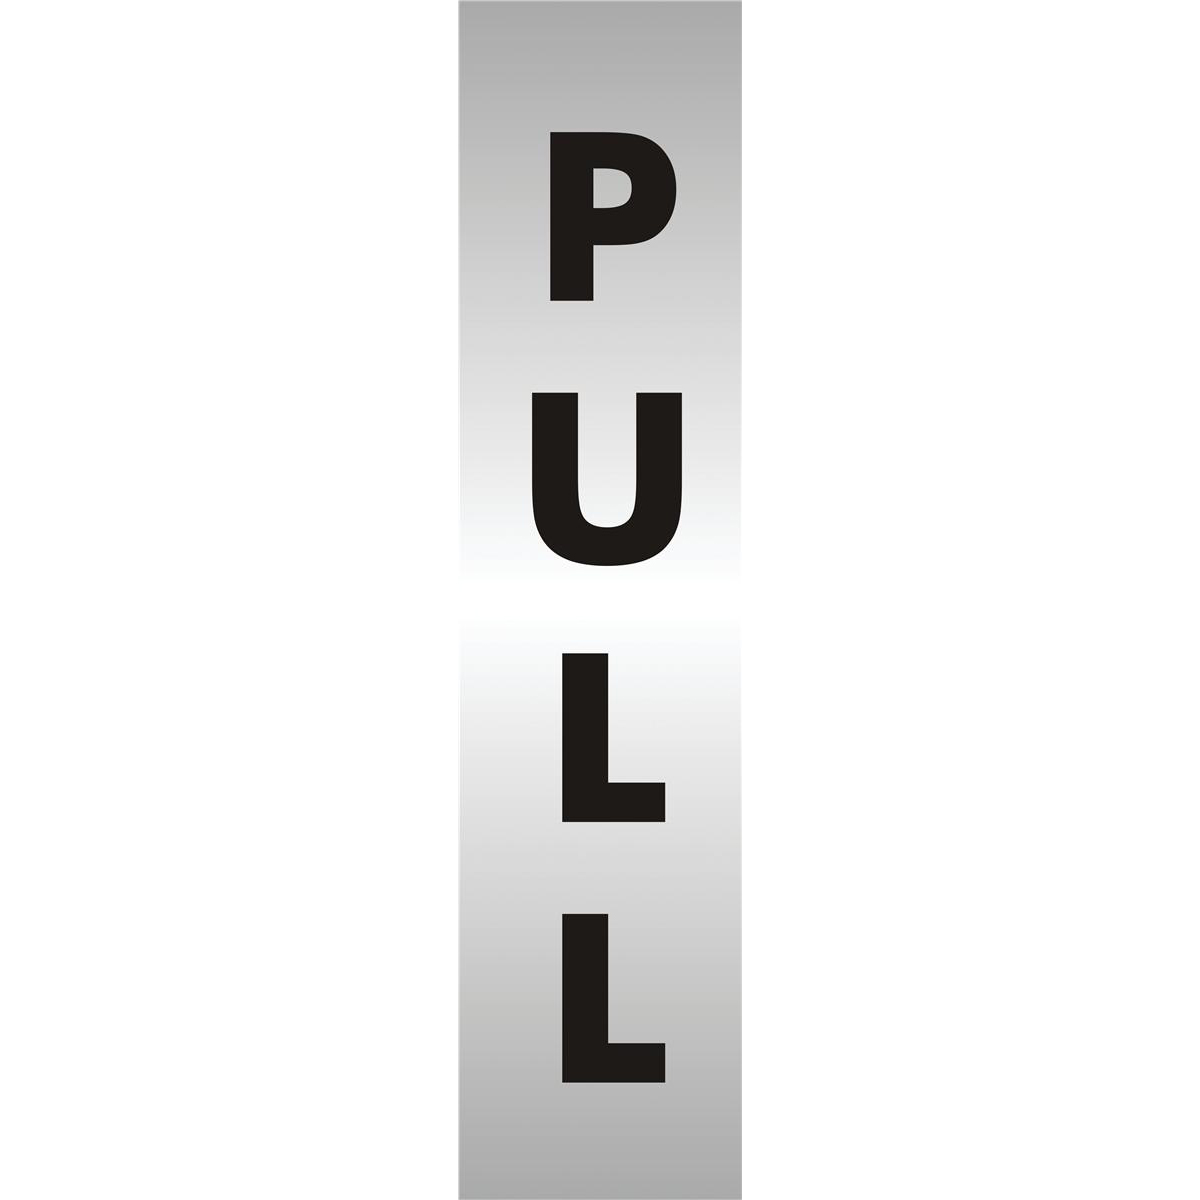 Pull Sign Brushed Aluminium Acrylic 190x45mm